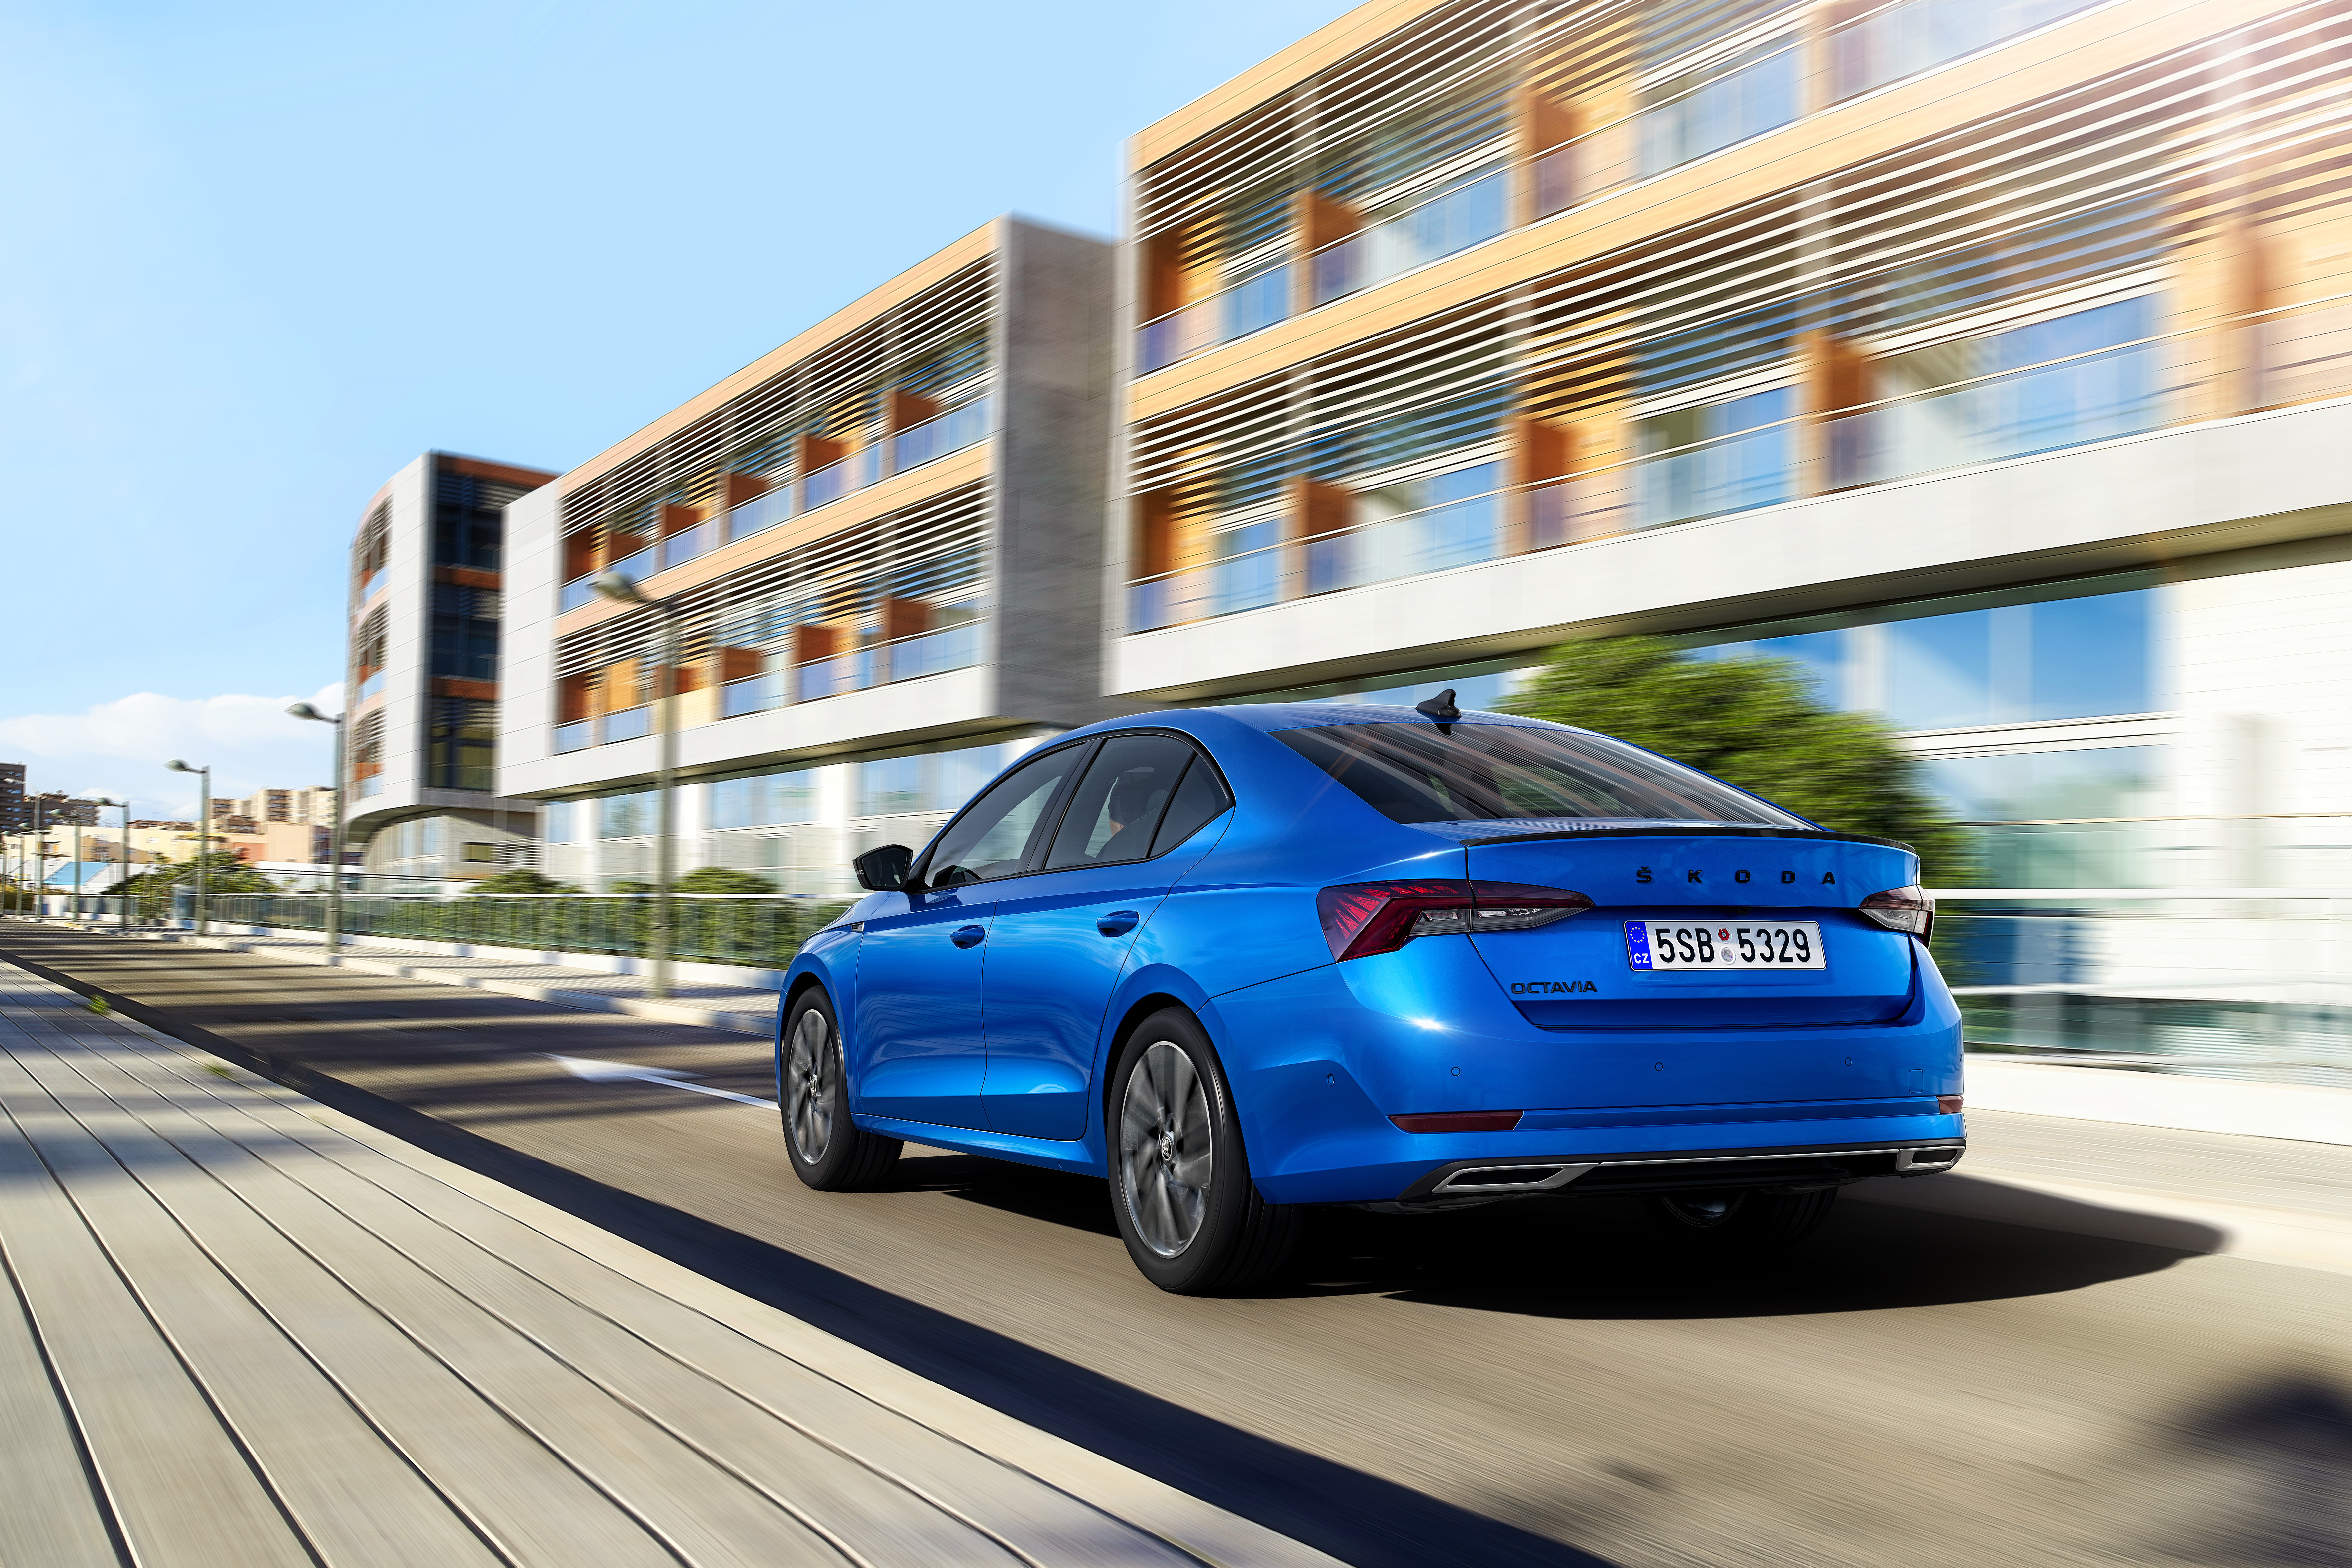 SKODA OCTAVIA available as SPORTLINE version for the first time - Image 1